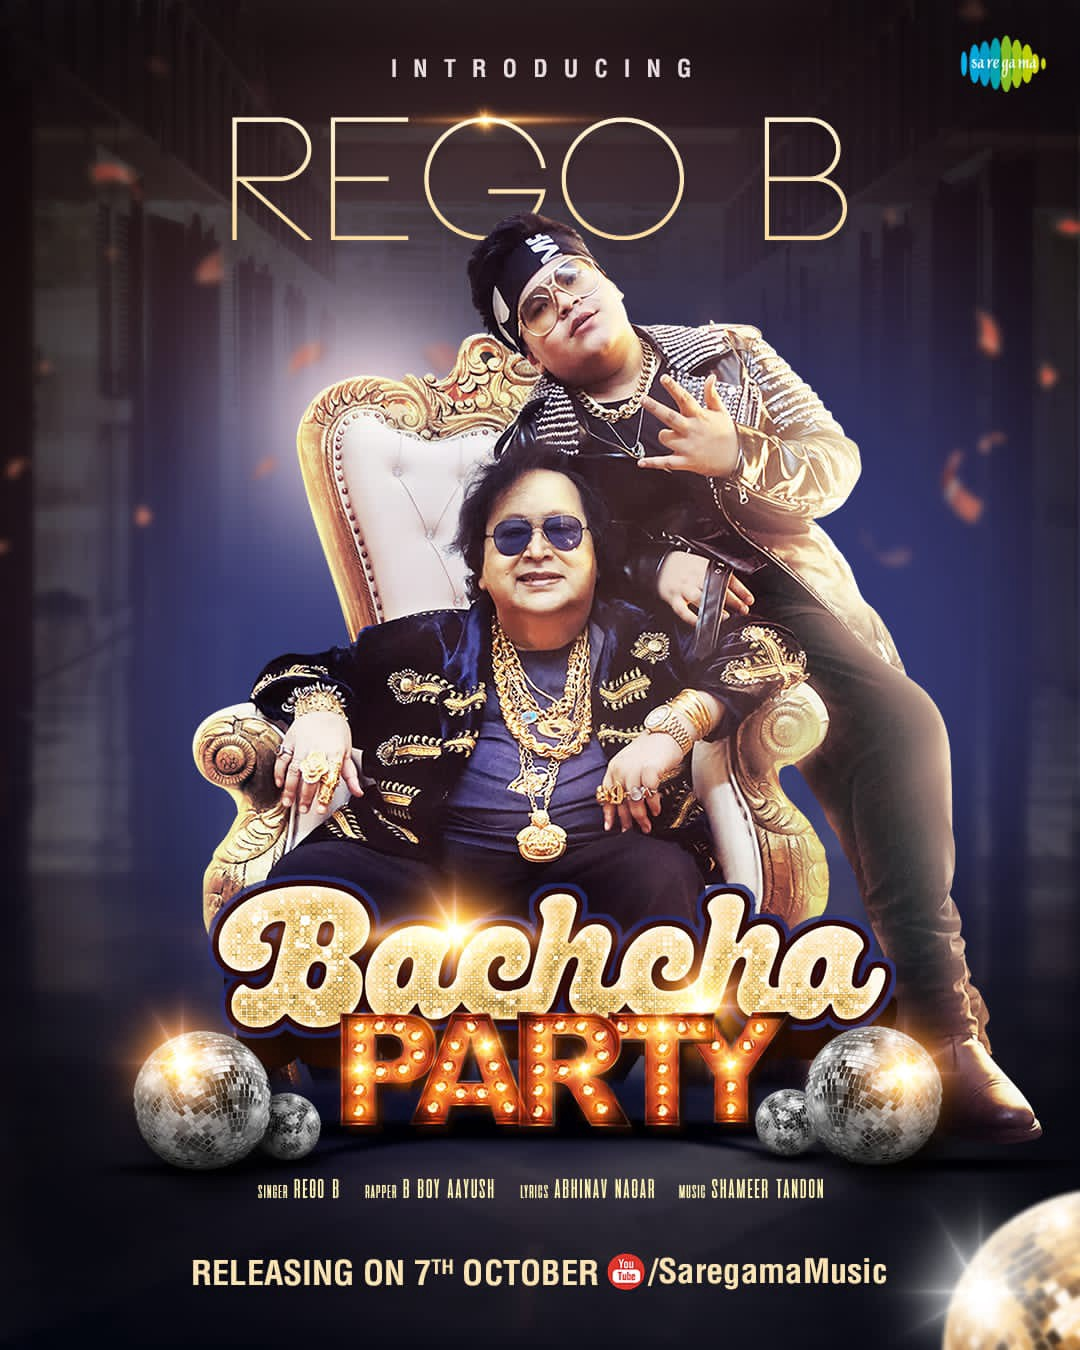 """""""BACHCHA PARTY"""" FEATURING GLOBAL SUPERSTAR R.E.G.O.B CROSSES 1 MILLION VIEWS IN JUST 4 DAYS"""